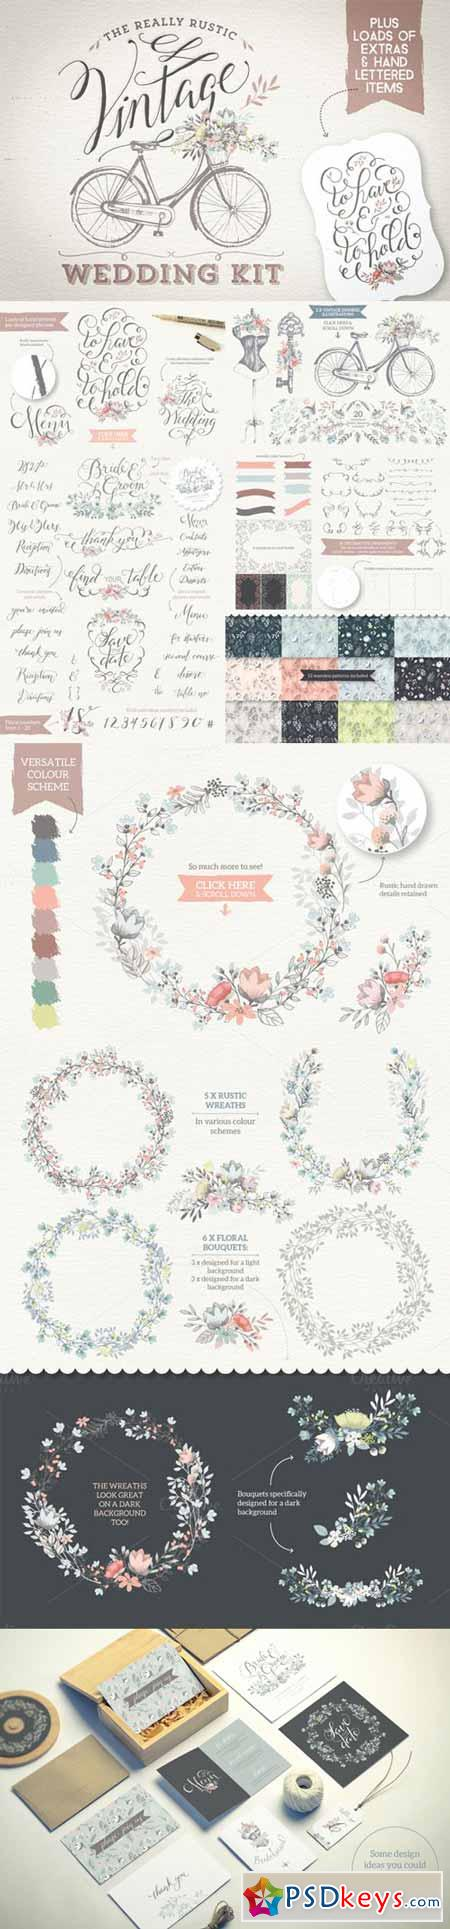 Really Rustic Vintage Wedding Kit 199465